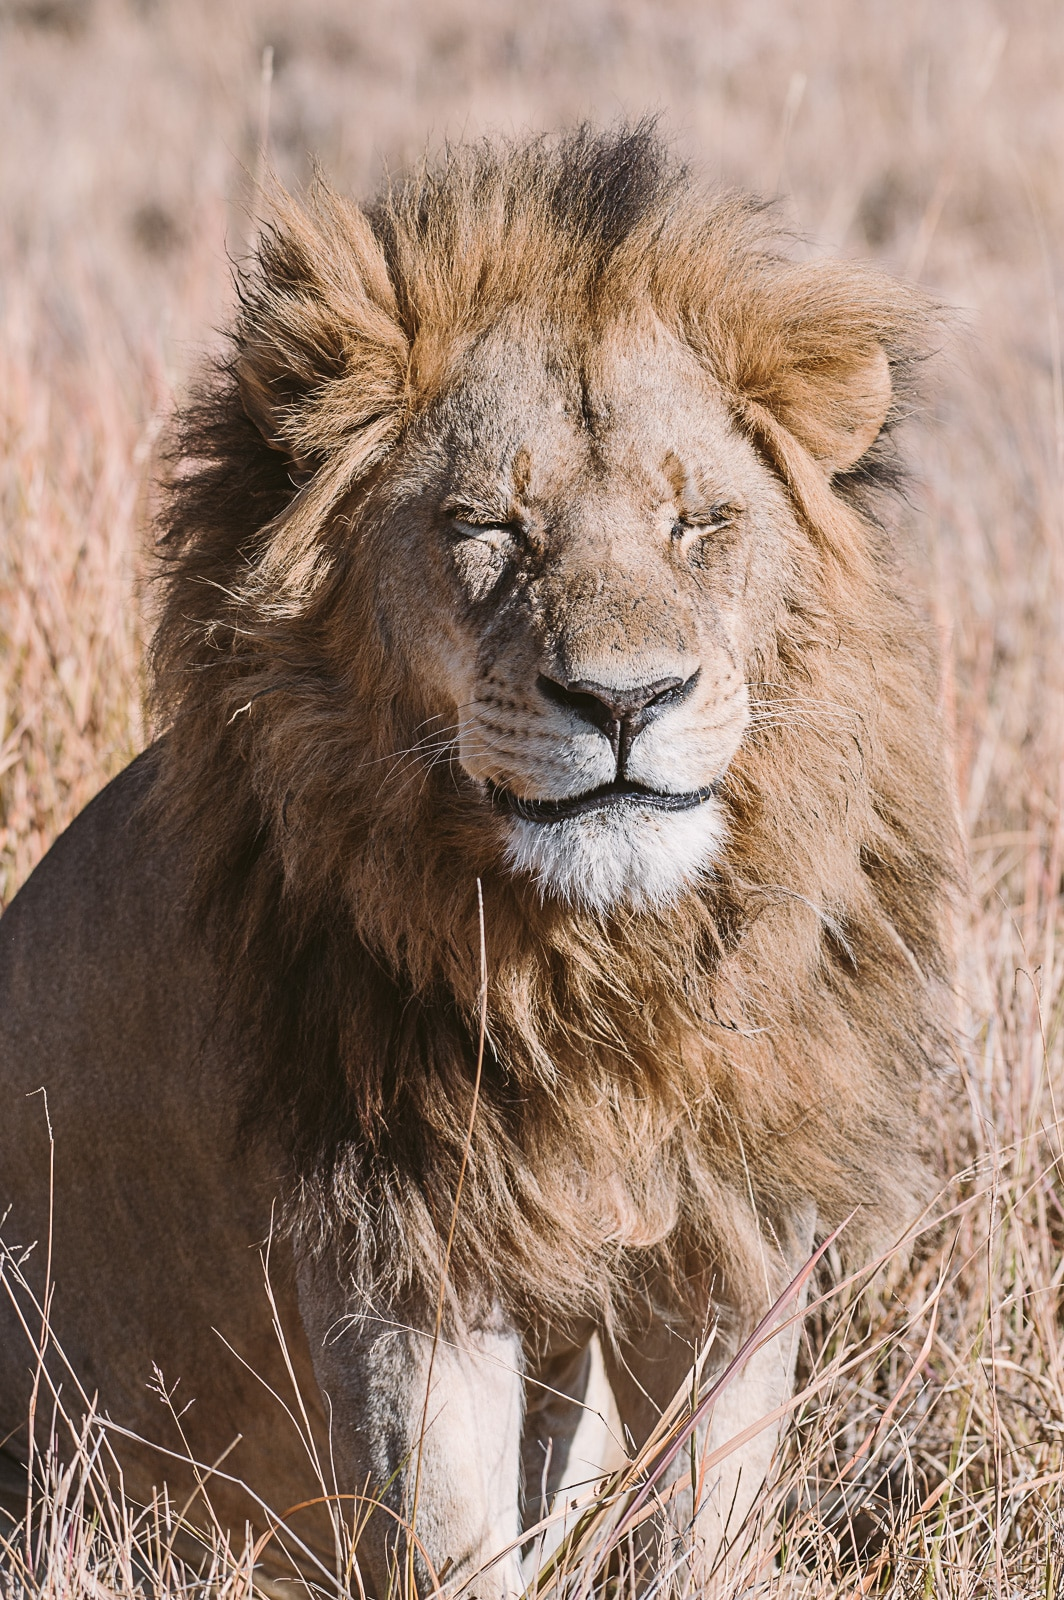 Lion in Africa by Marion Payr